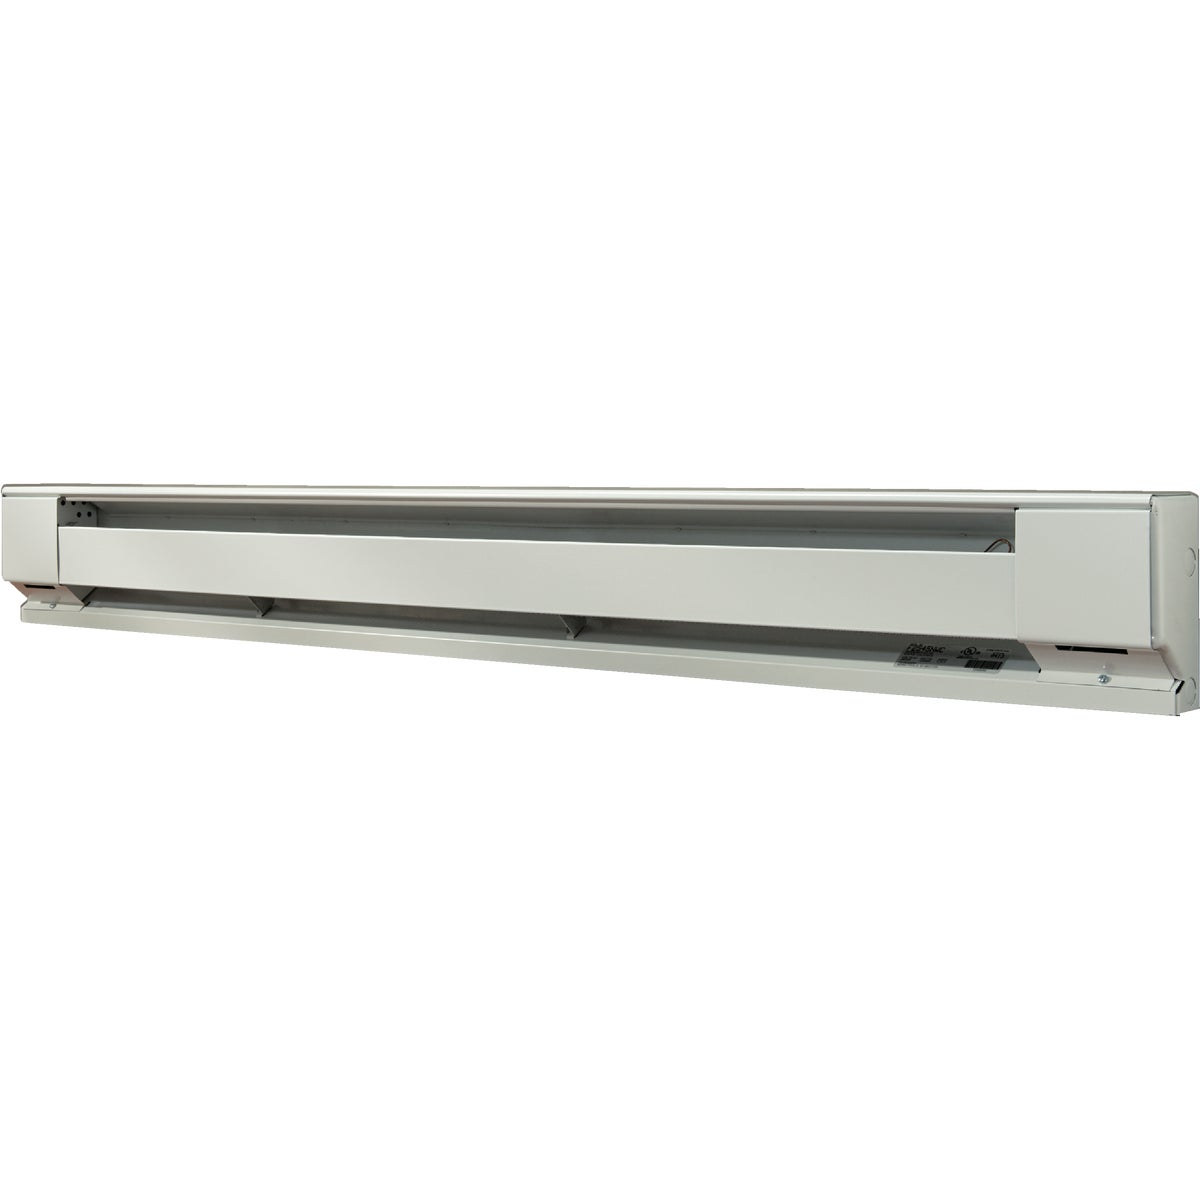 6' BASEBOARD HEATER - F2516 by Fahrenheat Marley